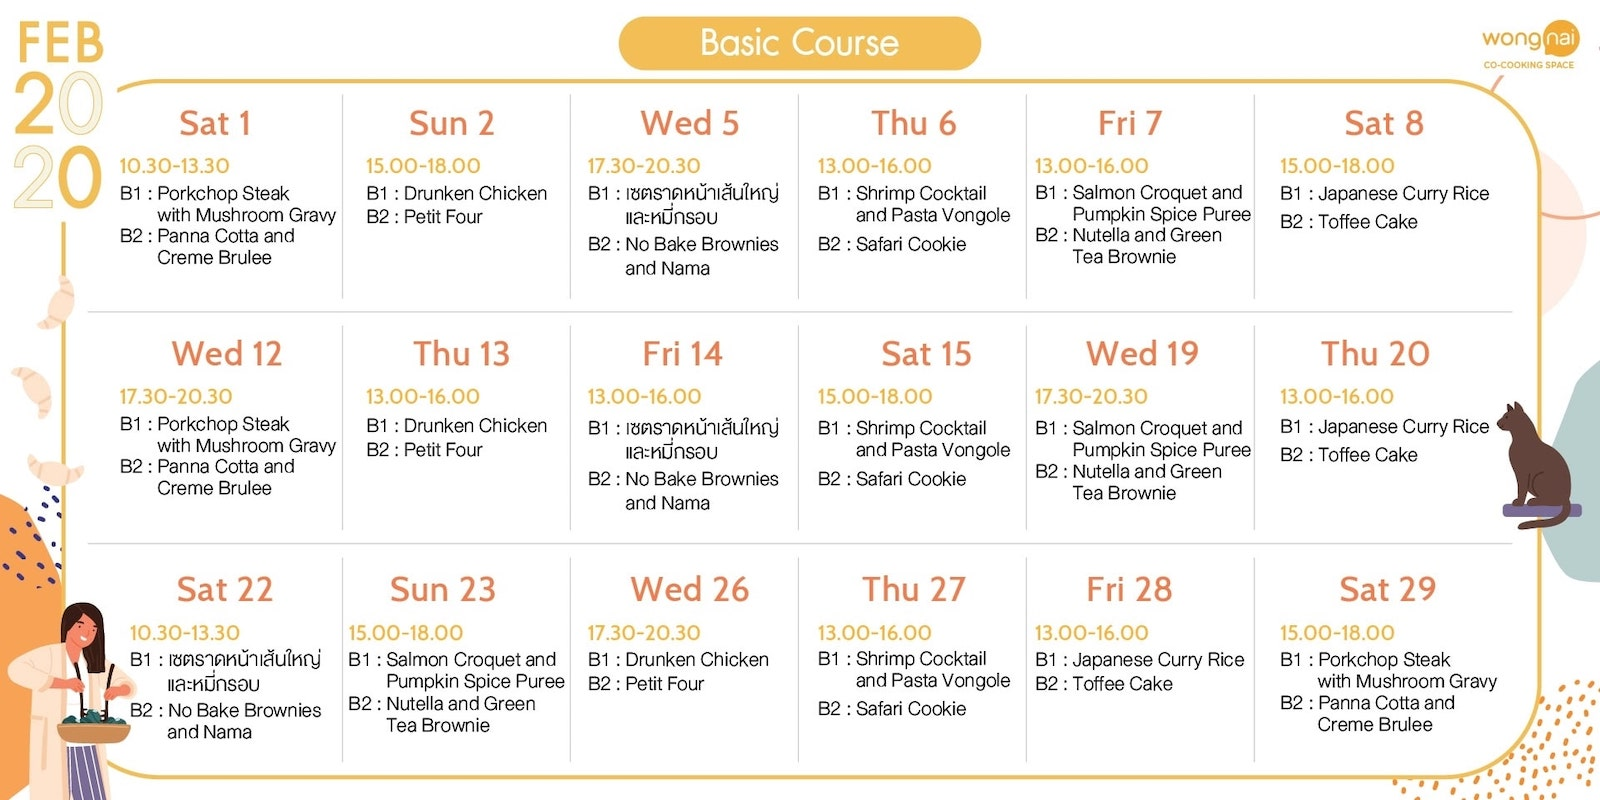 Basic Course Timetable